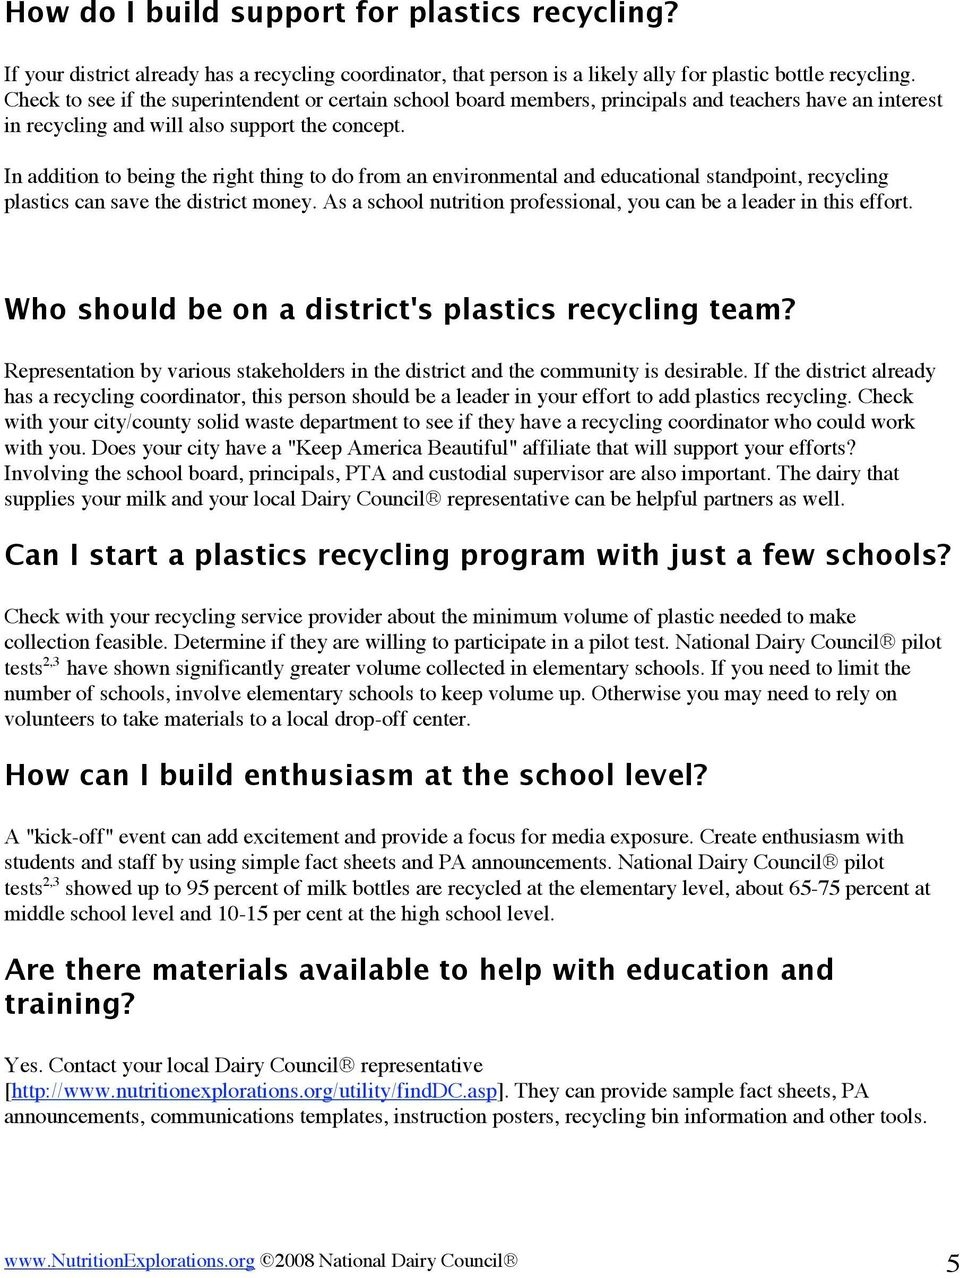 In addition to being the right thing to do from an environmental and educational standpoint, recycling plastics can save the district money.